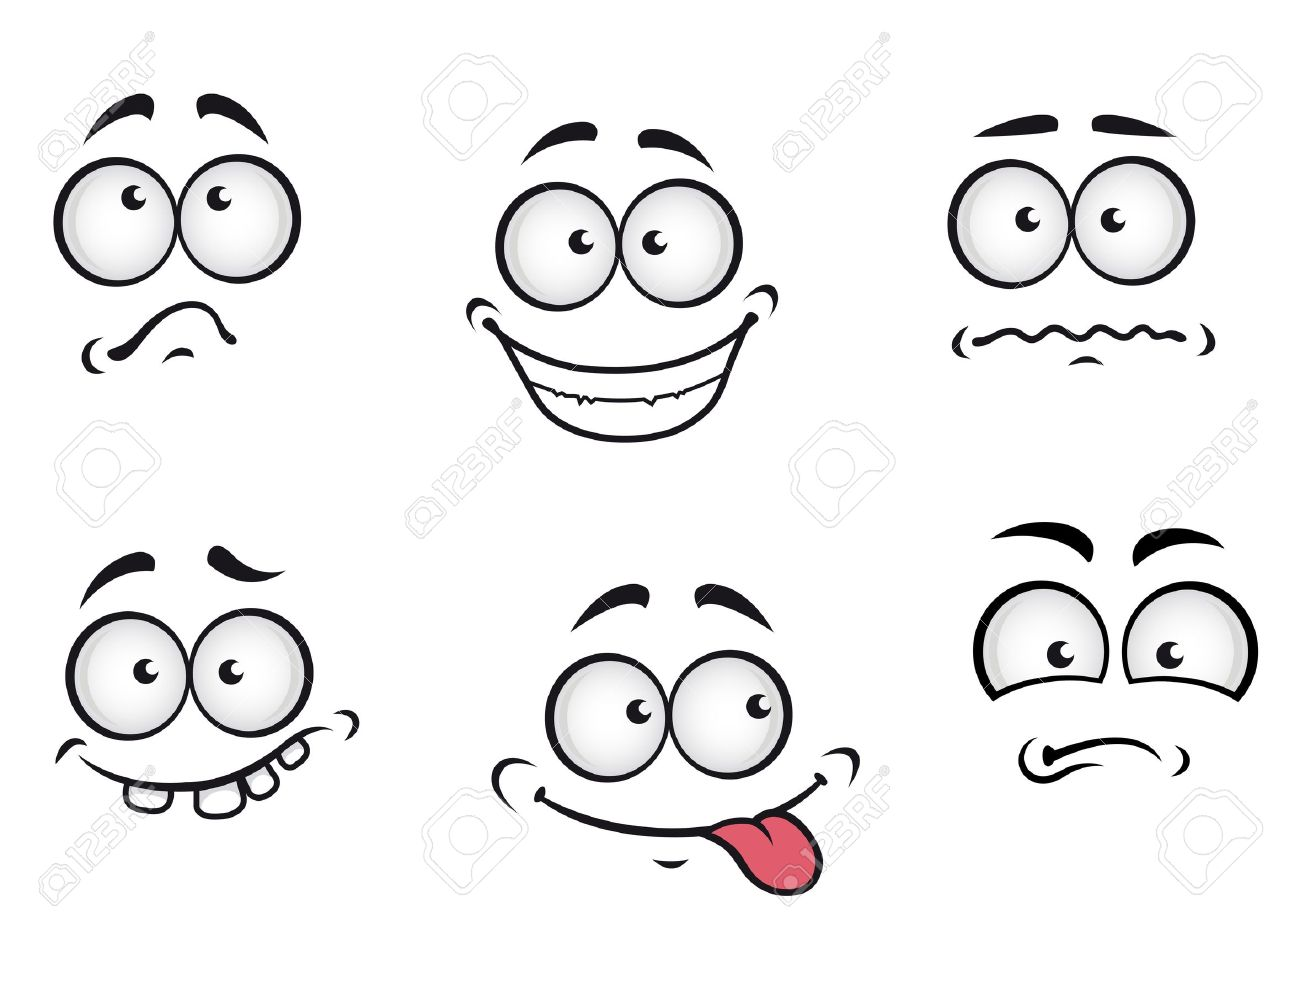 Cartoon Emotions Faces Set For Comics Design Royalty Free Cliparts ...